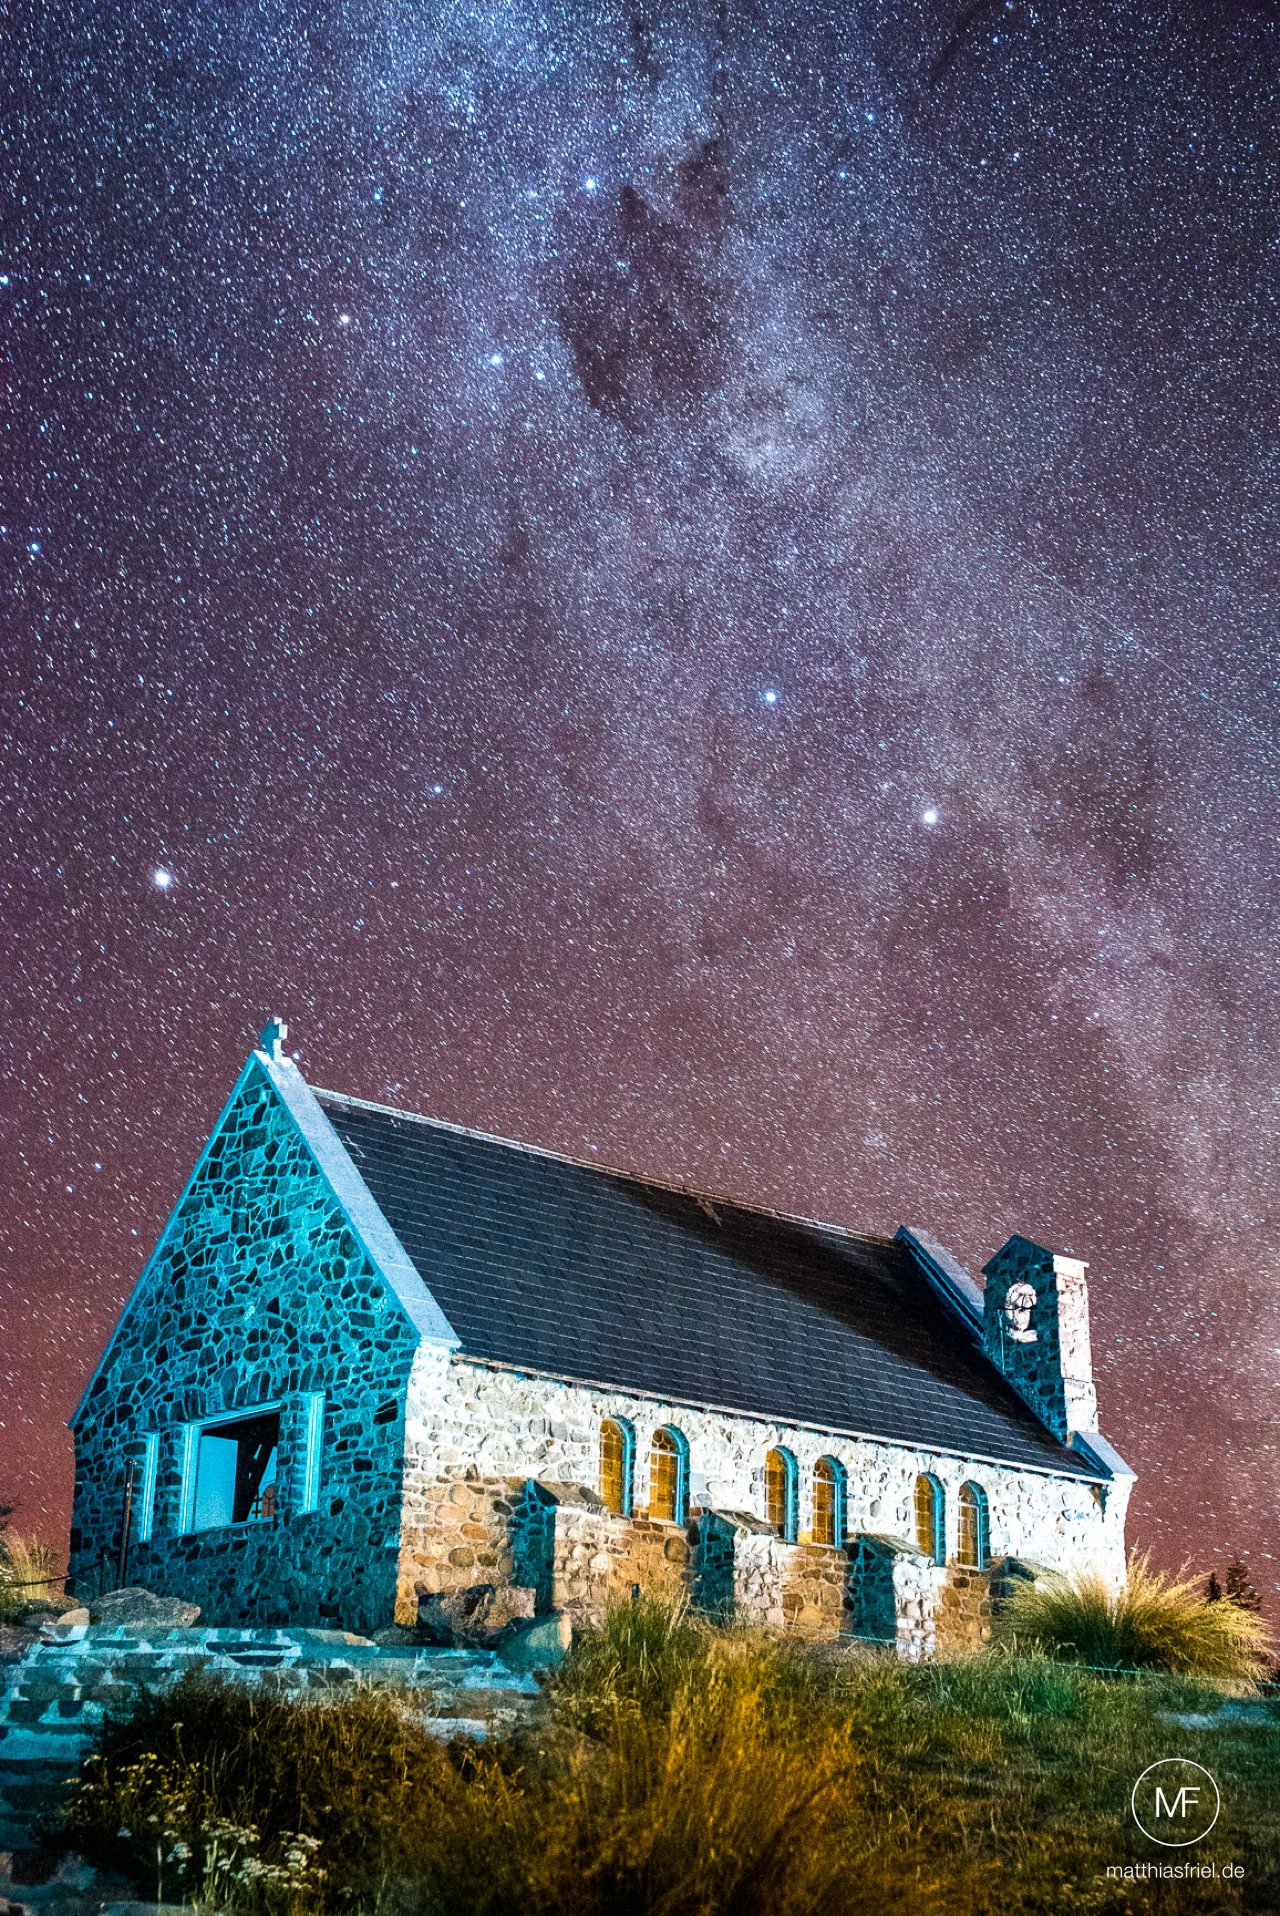 new-zealand-south-island-travel-photography-matthias-friel_0173